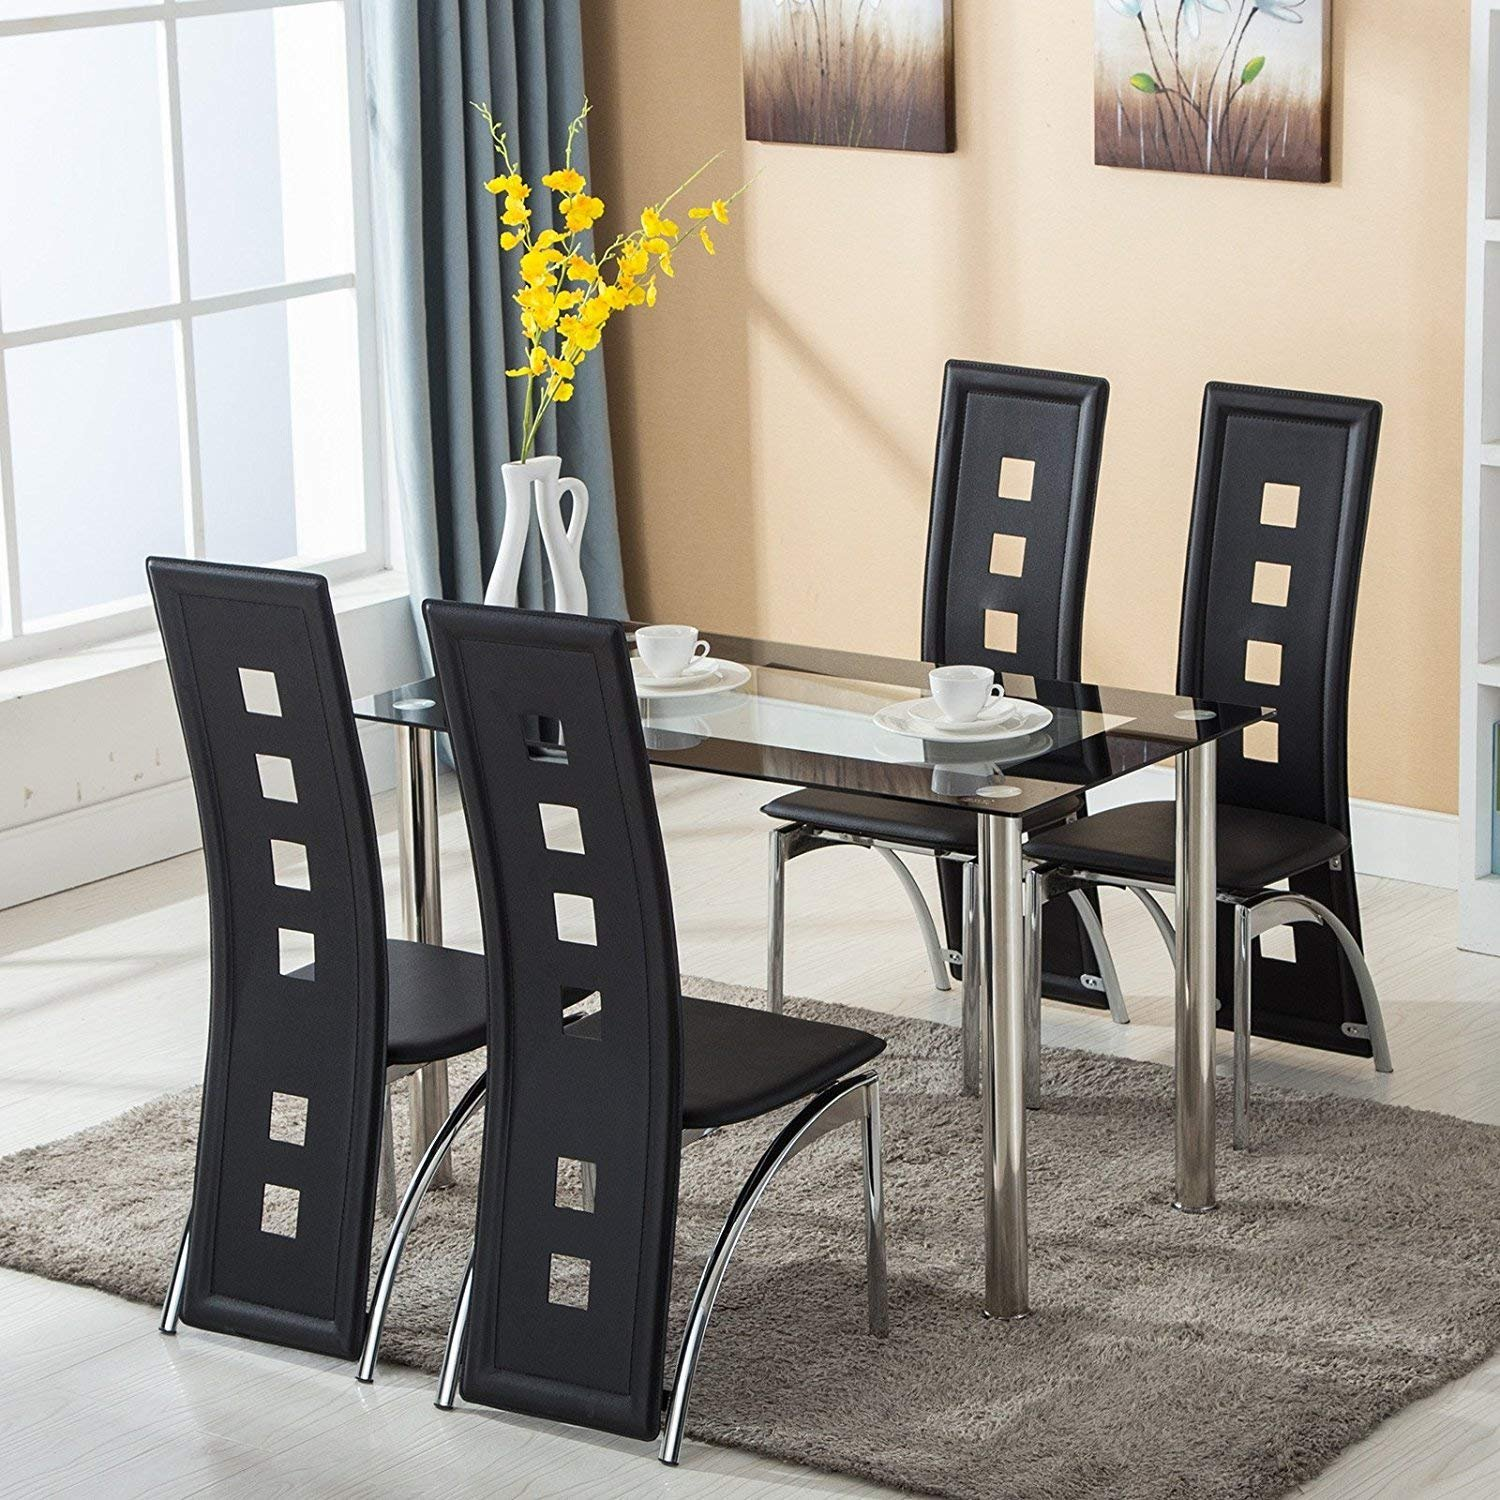 Mecor Dining Room Table Set, 5 Piece Glass Kitchen Table and Leather Chairs Kitchen Furniture(Black) by Mecor